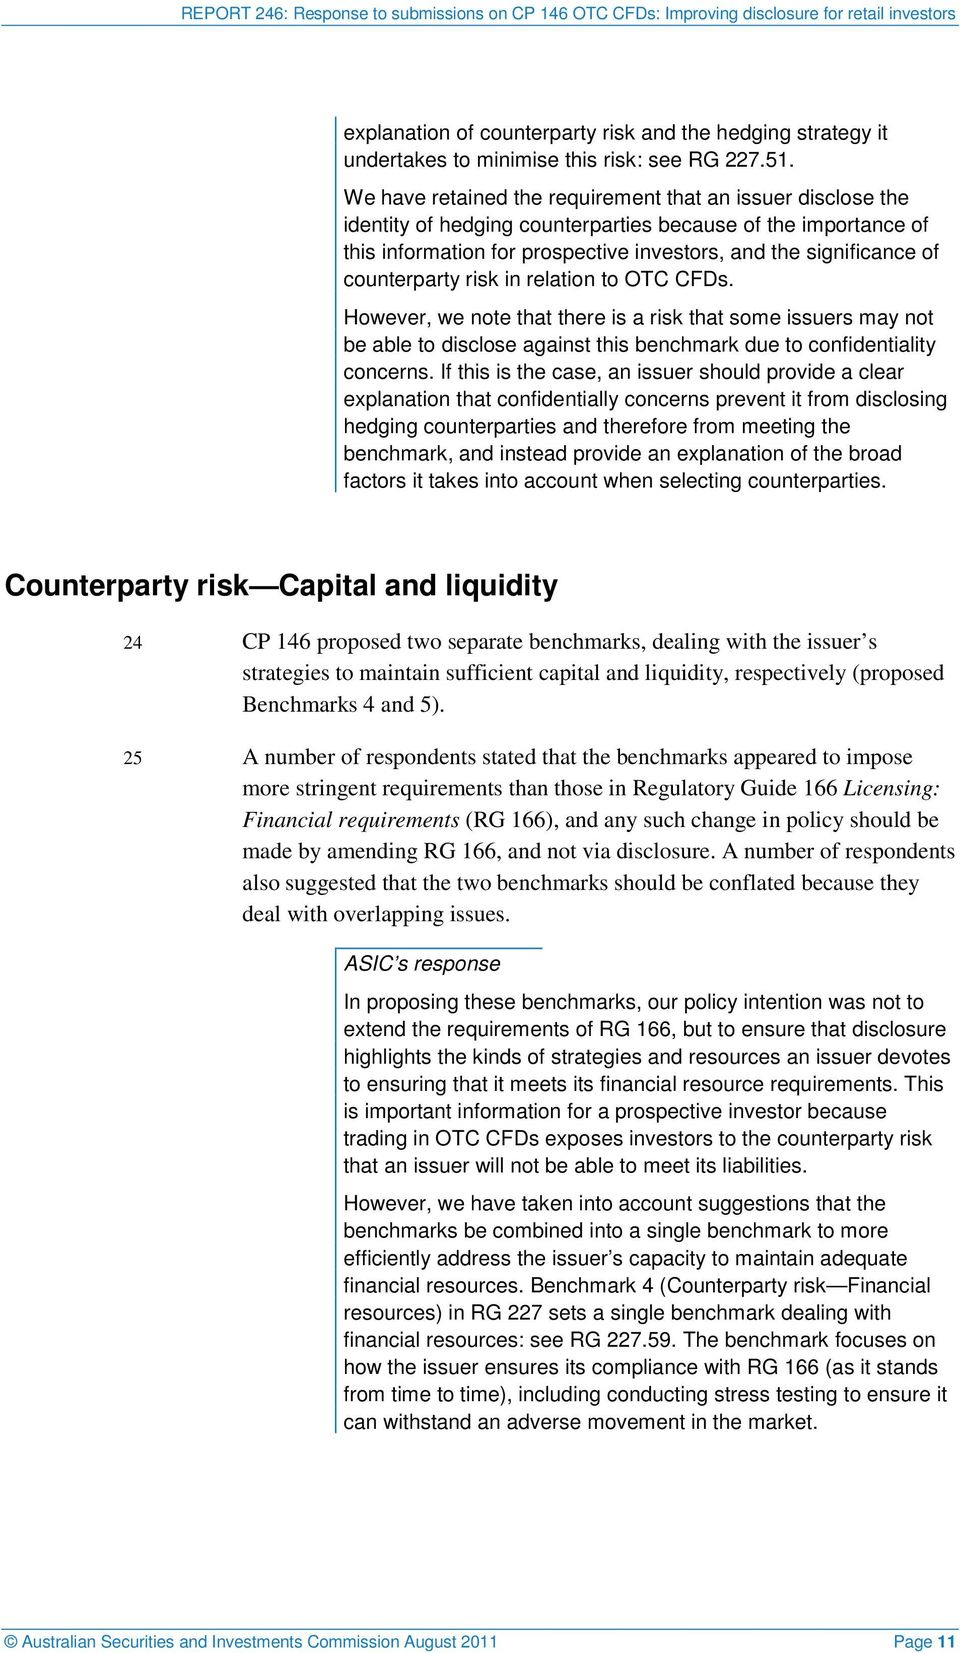 counterparty risk in relation to OTC CFDs. However, we note that there is a risk that some issuers may not be able to disclose against this benchmark due to confidentiality concerns.